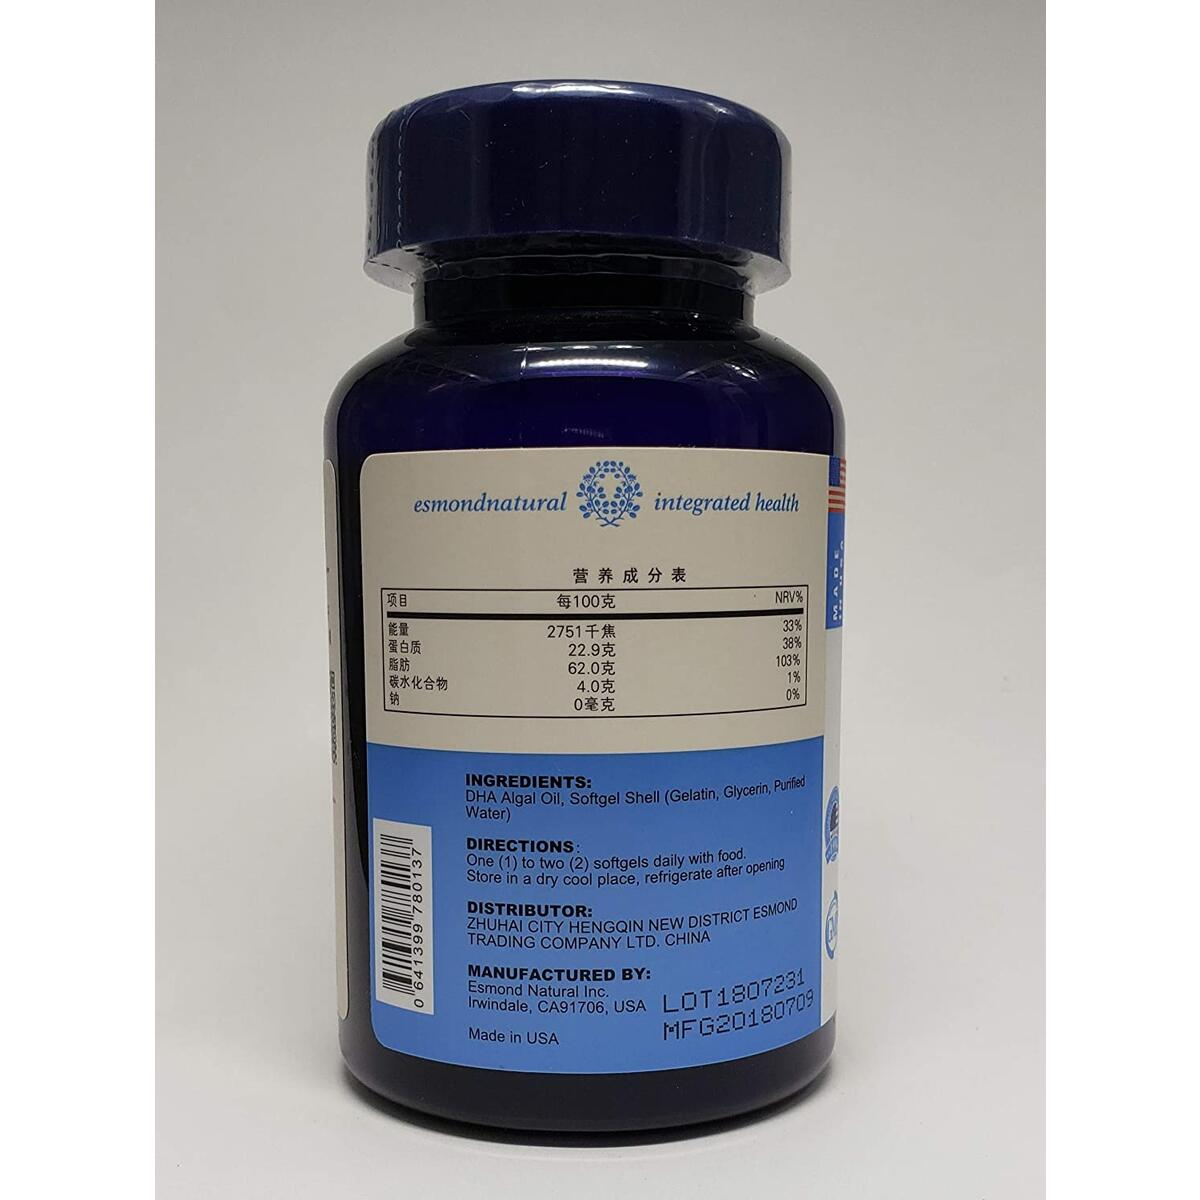 (5 Count, 25% Off) Esmond Natural: DHA Algal Oil (40% DHA Docosahexaenoic Acid), GMP, Natural Product Assn Certified, Made in USA-480mg, 300 Softgels